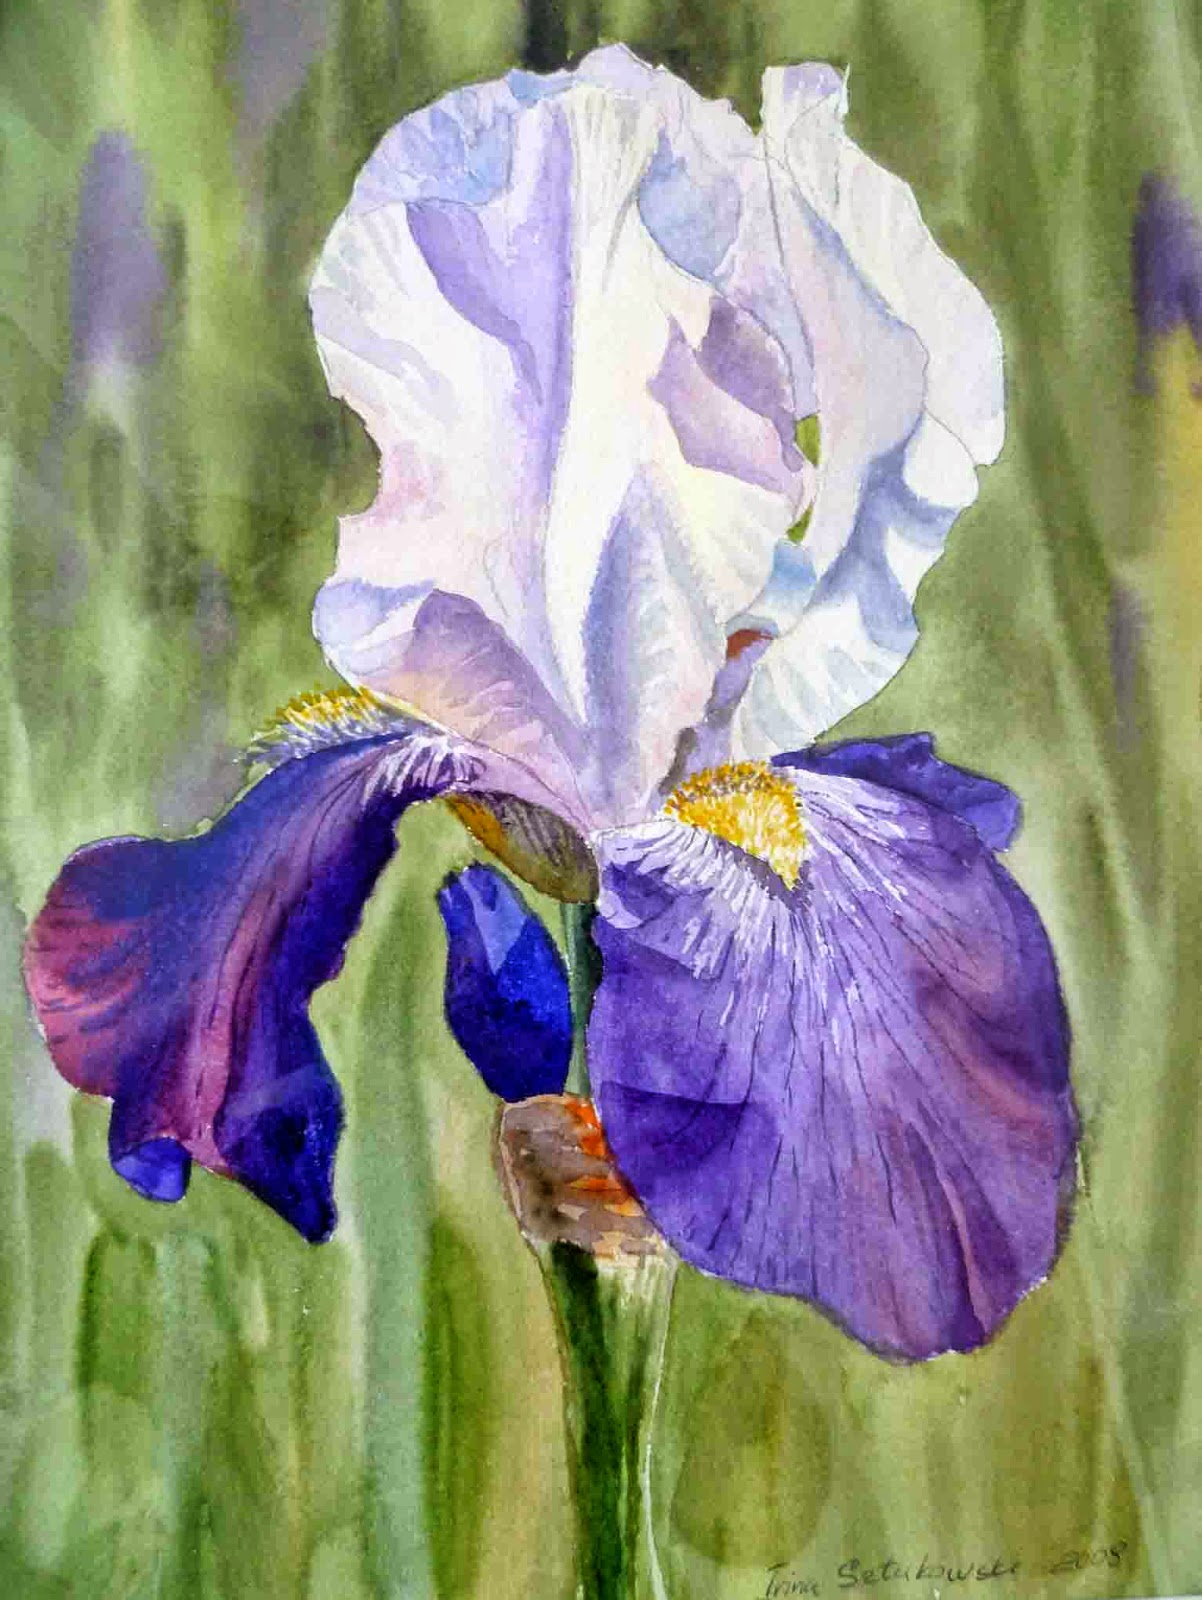 Artist illustrator irina sztukowski first iris flowers realism in watercolor realistic painting izmirmasajfo